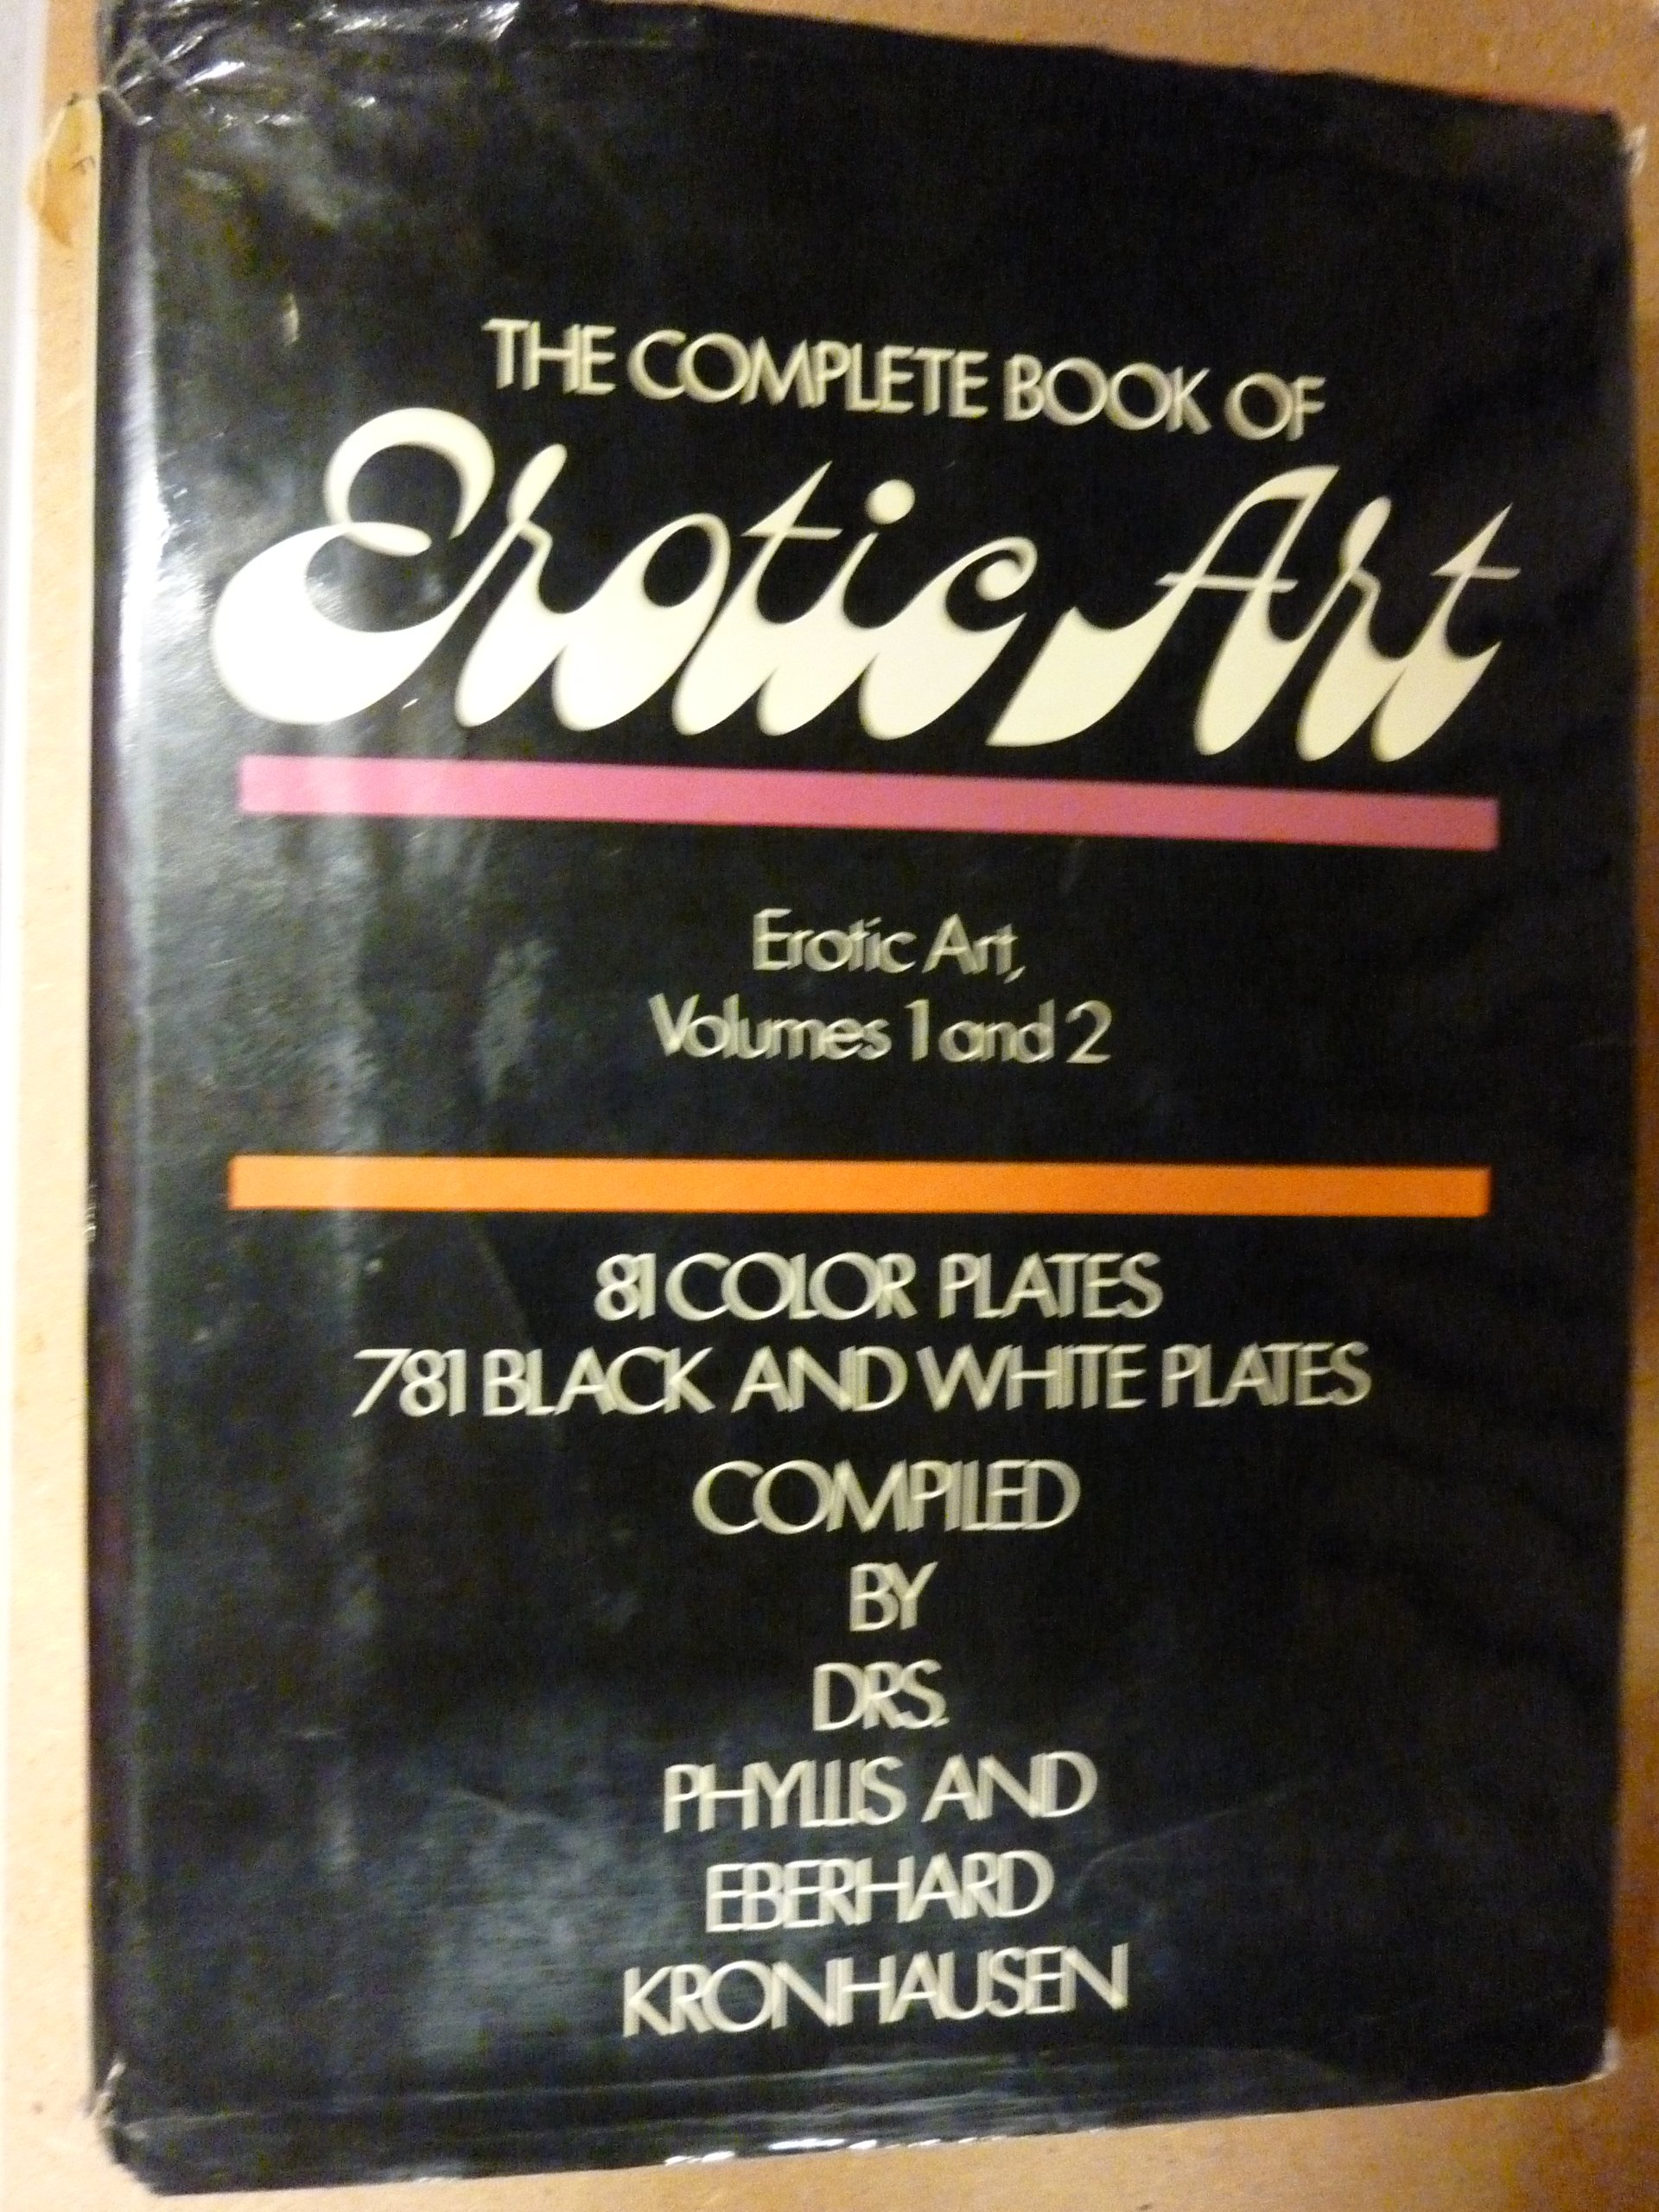 The Complete Book of Erotic Art; Erotic Art, Volumes 1 and 2: A Survey of  Erotic Fact and Fancy in the Fine Arts (German) Hardcover – 1968